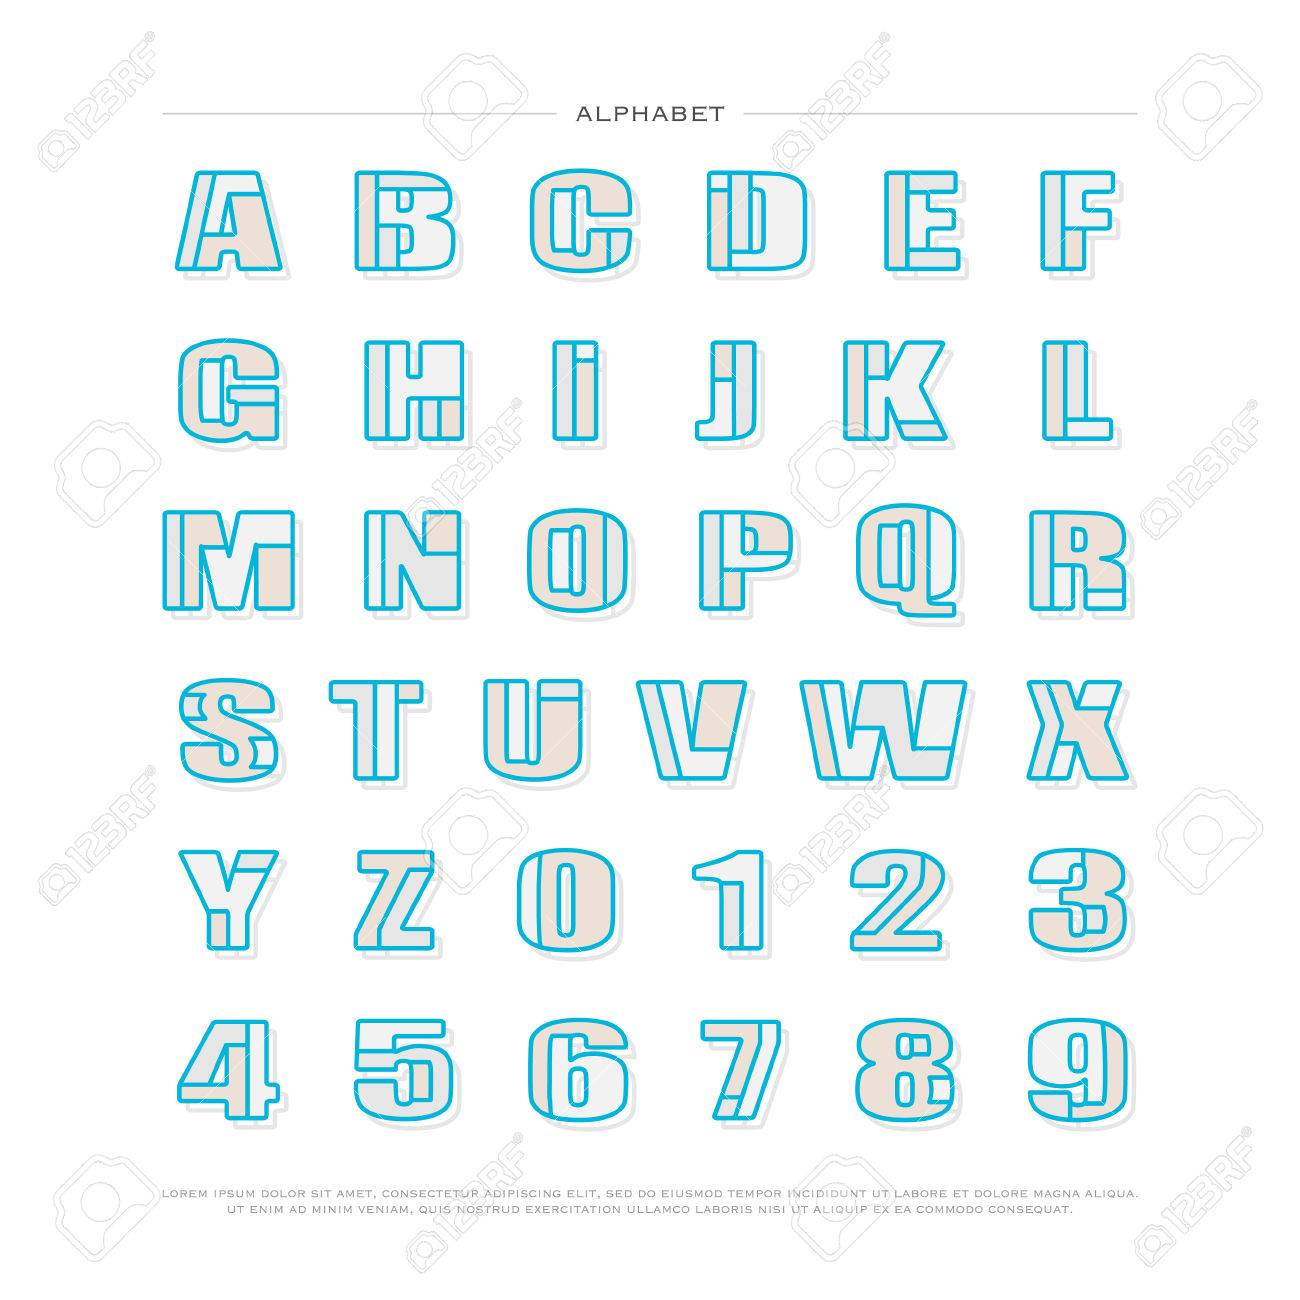 Banco De Imagens   Mosaic Style Alphabet Letters And Numbers. Font Type  Design. Lettering Puzzle 3d Elements. Bold Typesetting. Regular Typeface  Template